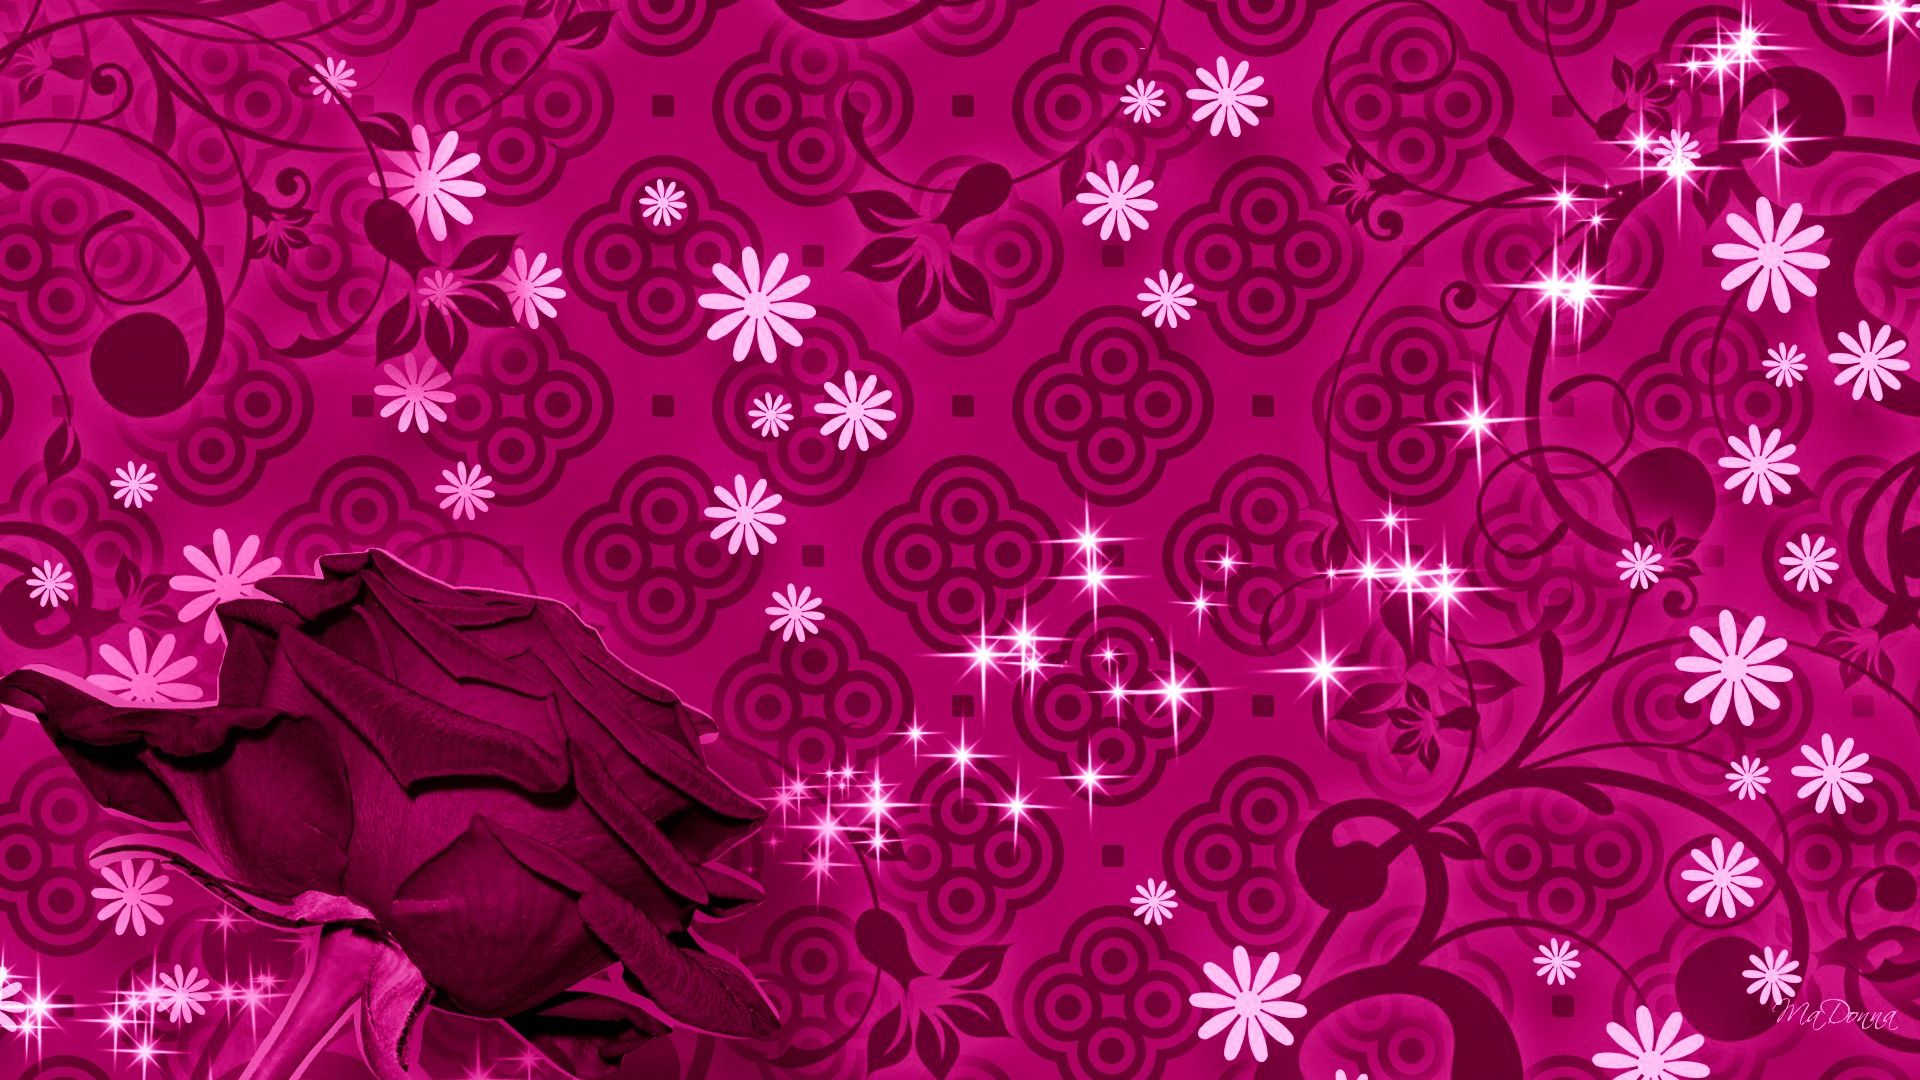 Rose Flowers Wallpapers For Smartphone Of The Year Pink Wallpaper Rose Flower